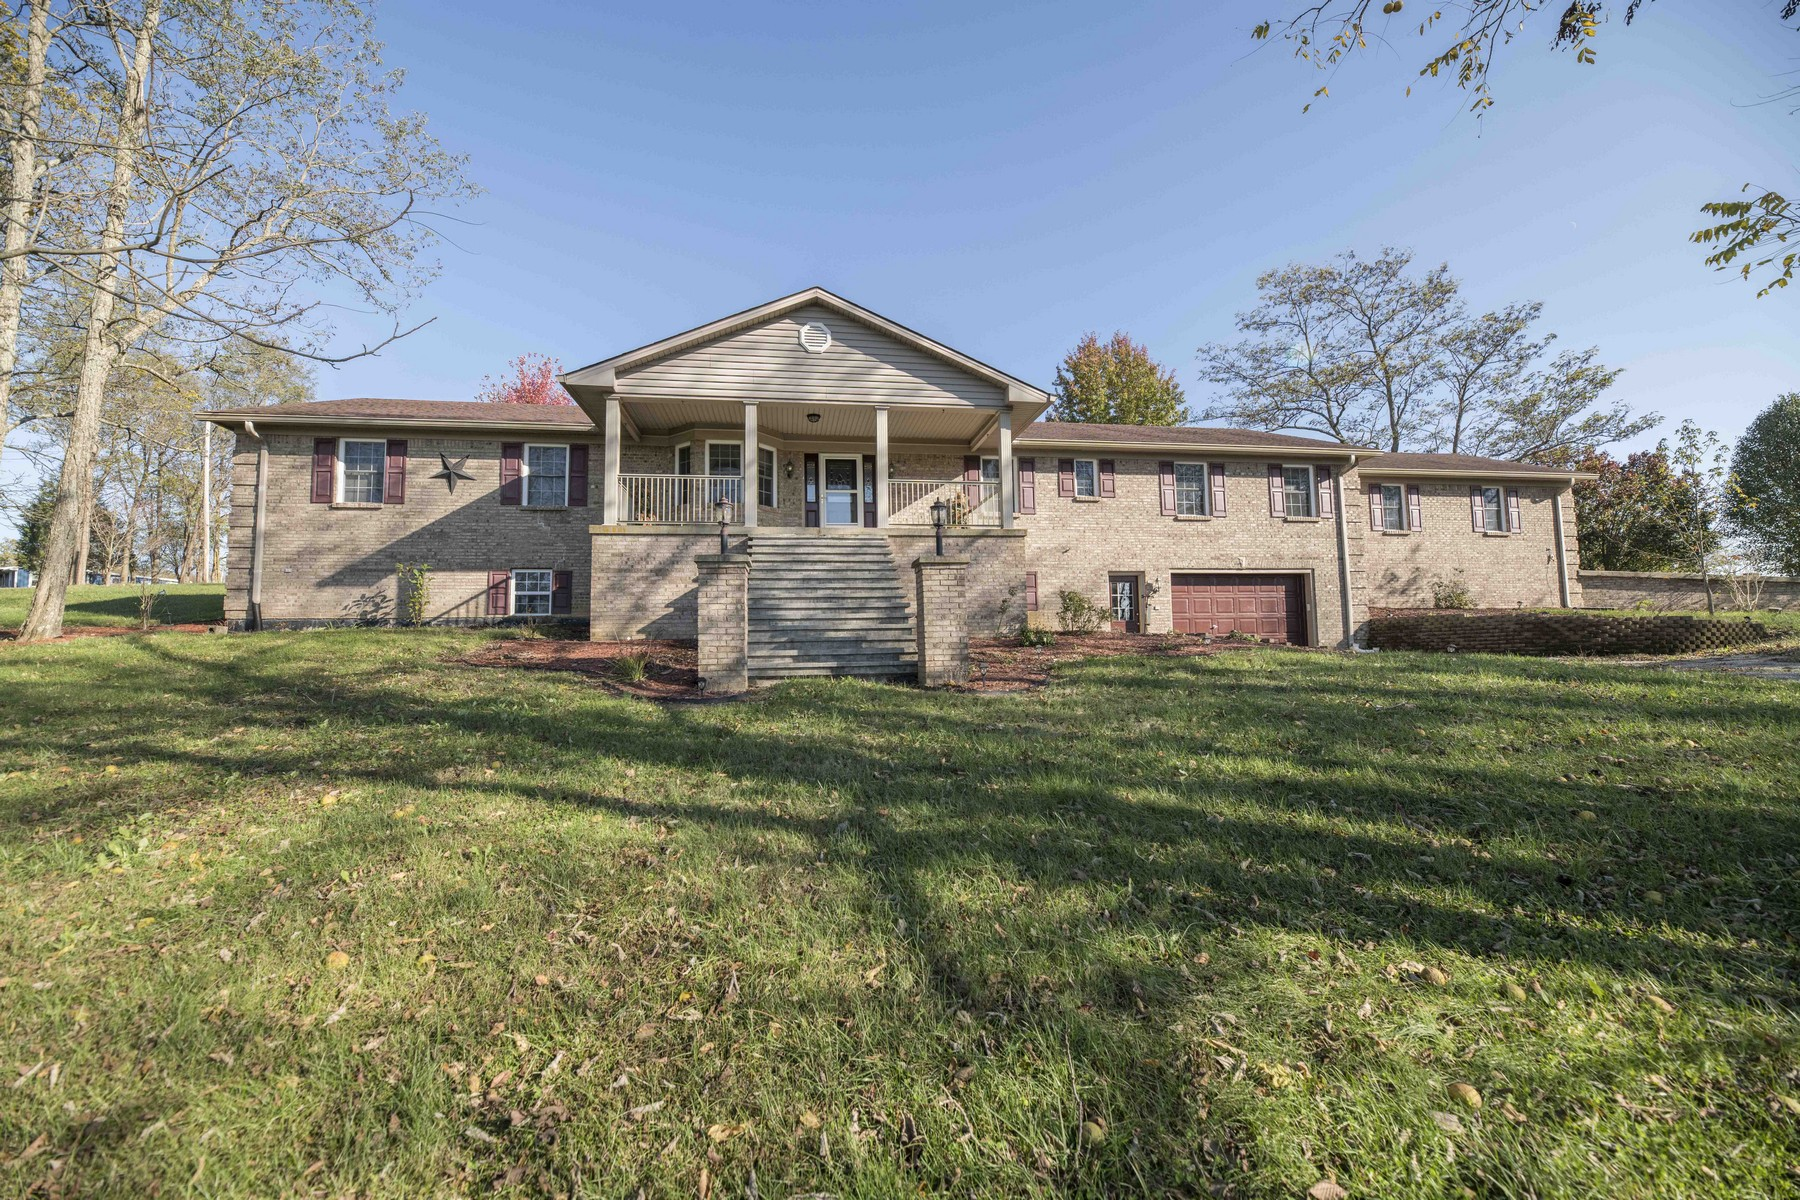 Single Family Homes for Sale at 333 Goose Creek Lane Winchester, Kentucky 40391 United States